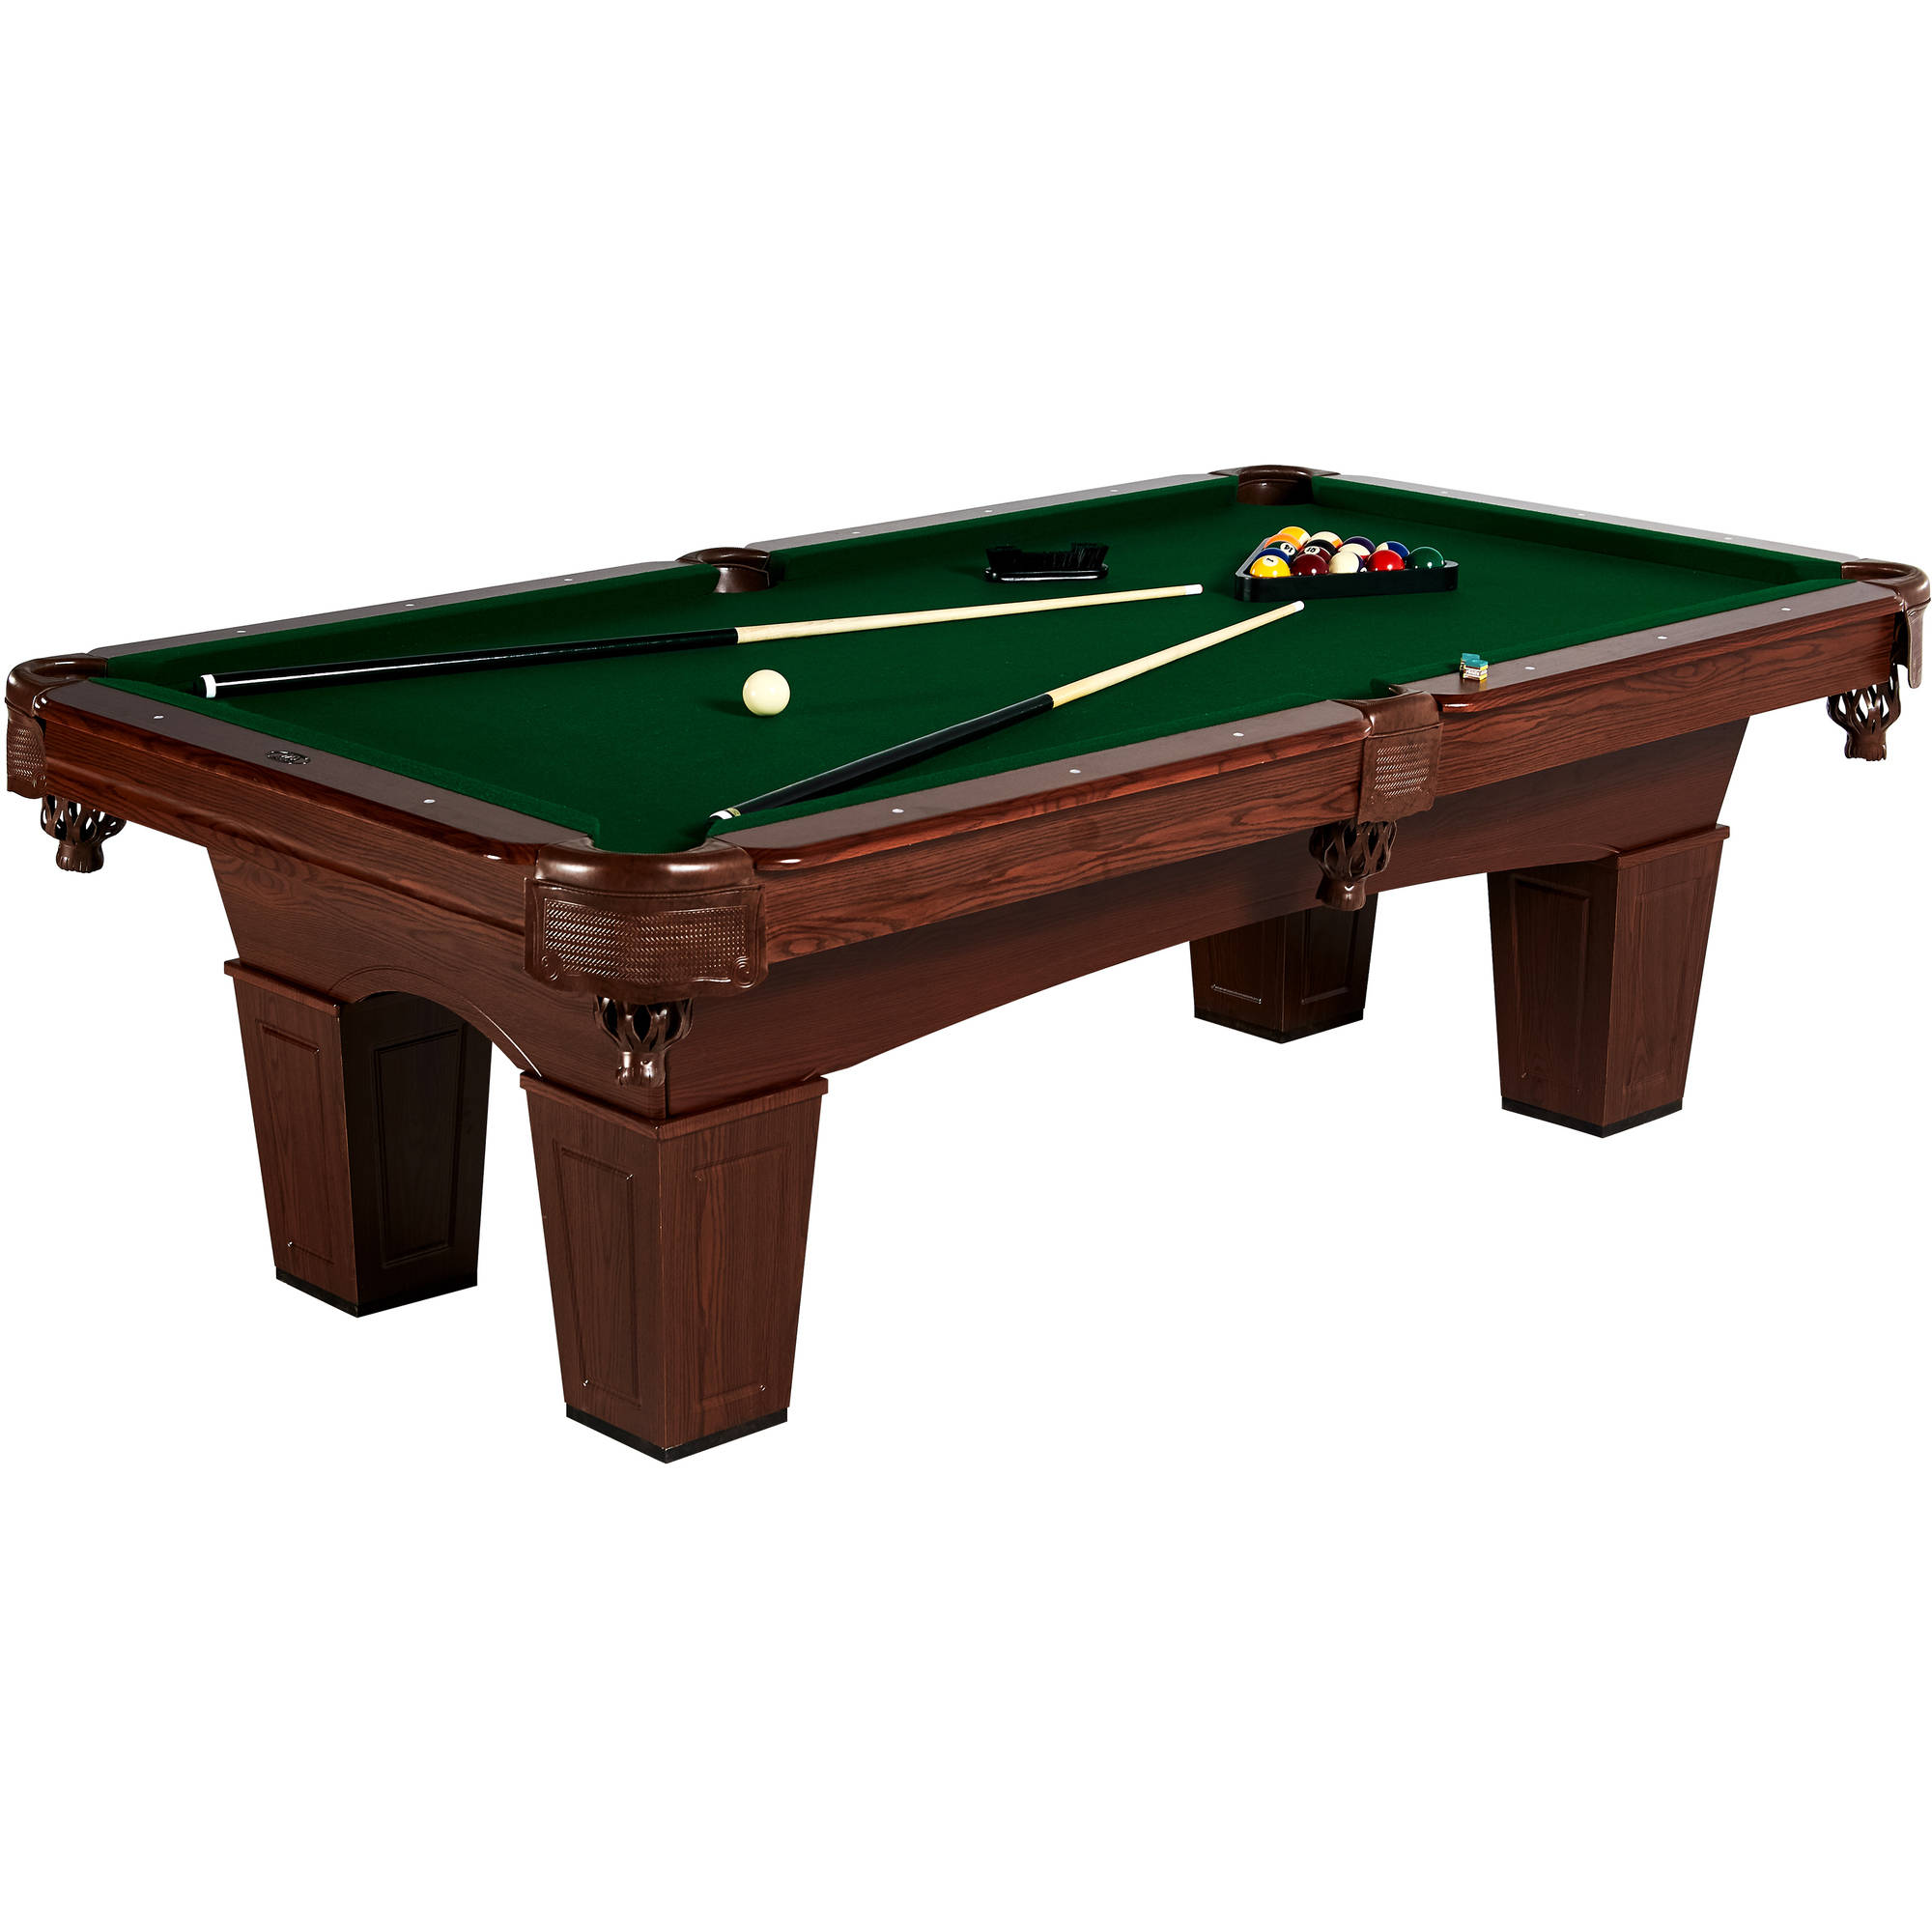 MD Sports Crestmont 8 ft Billiard Pool Table